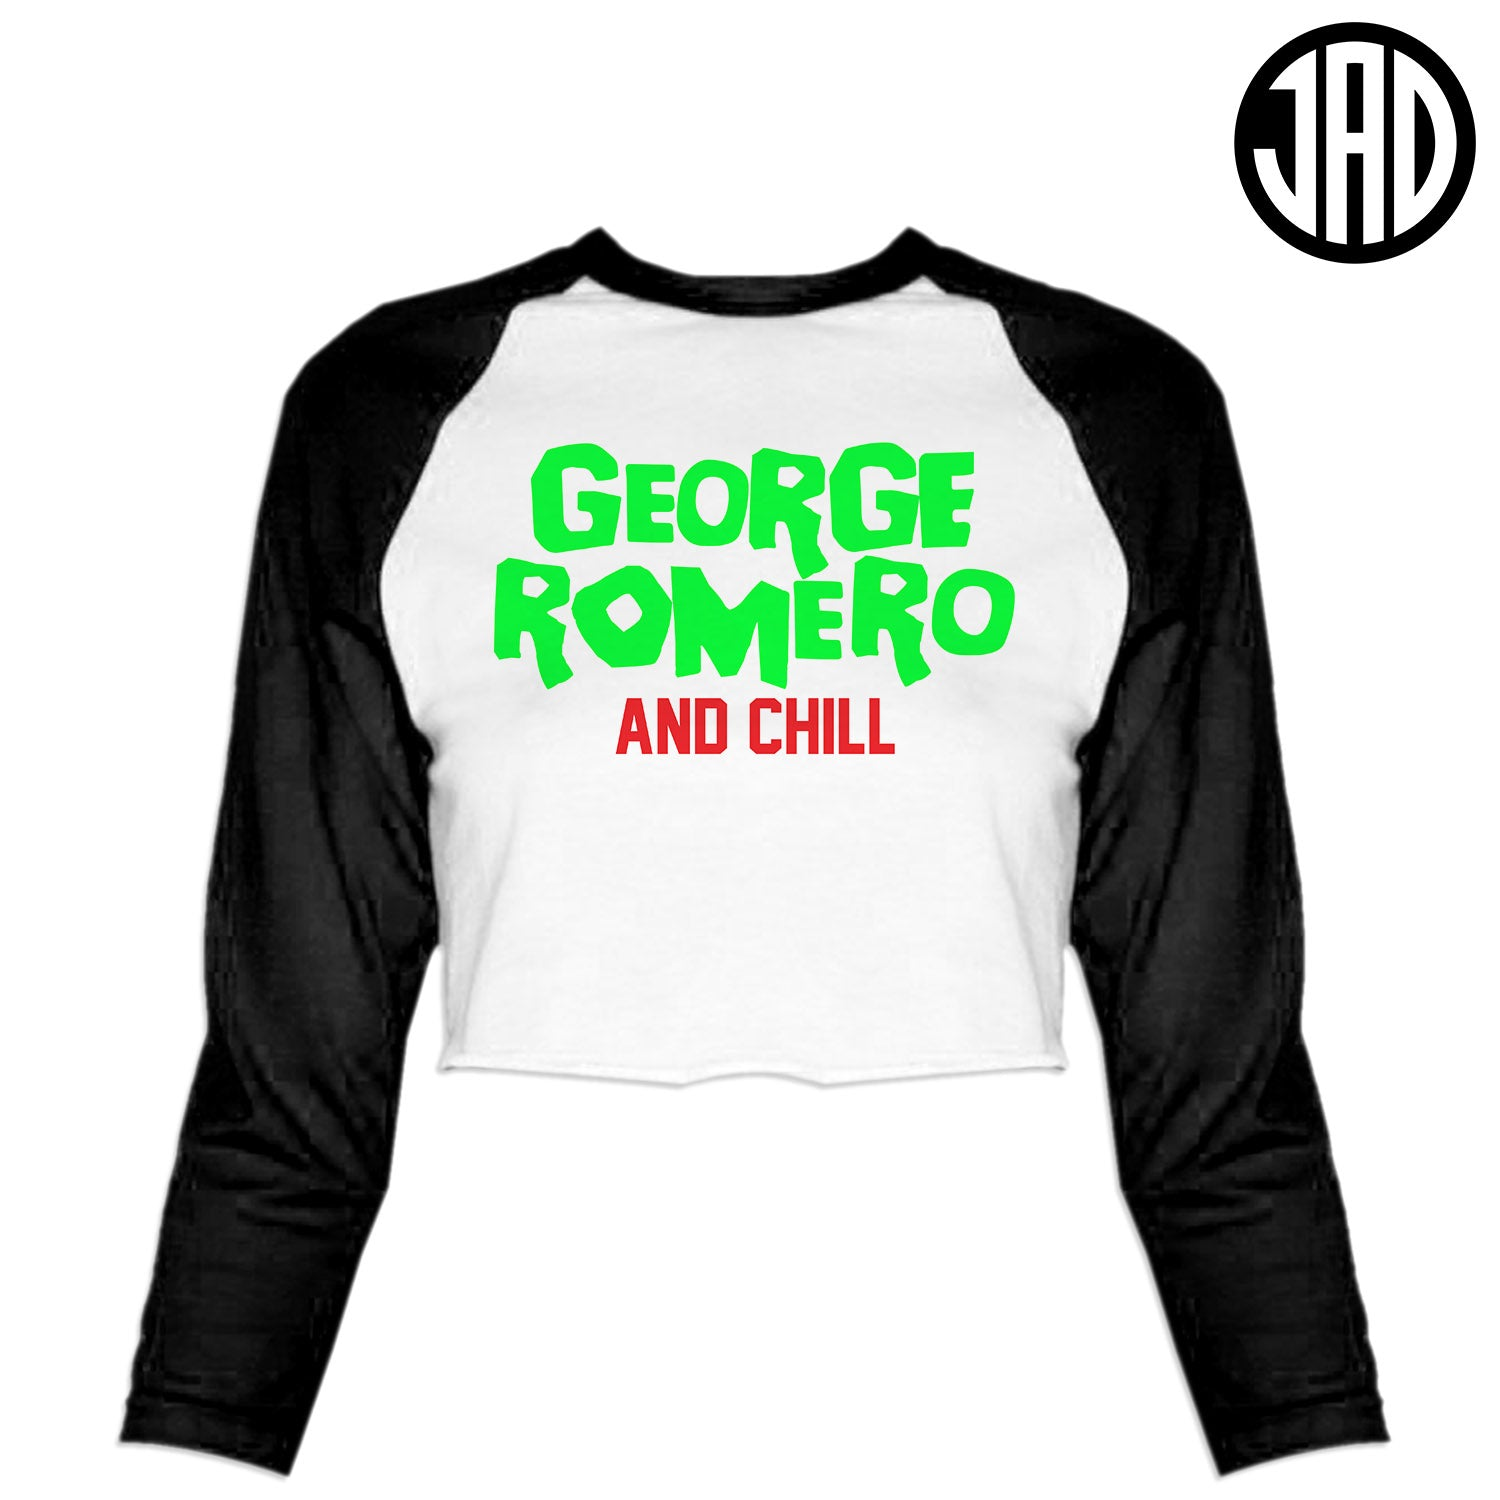 Romero & Chill - Women's Cropped Baseball Tee